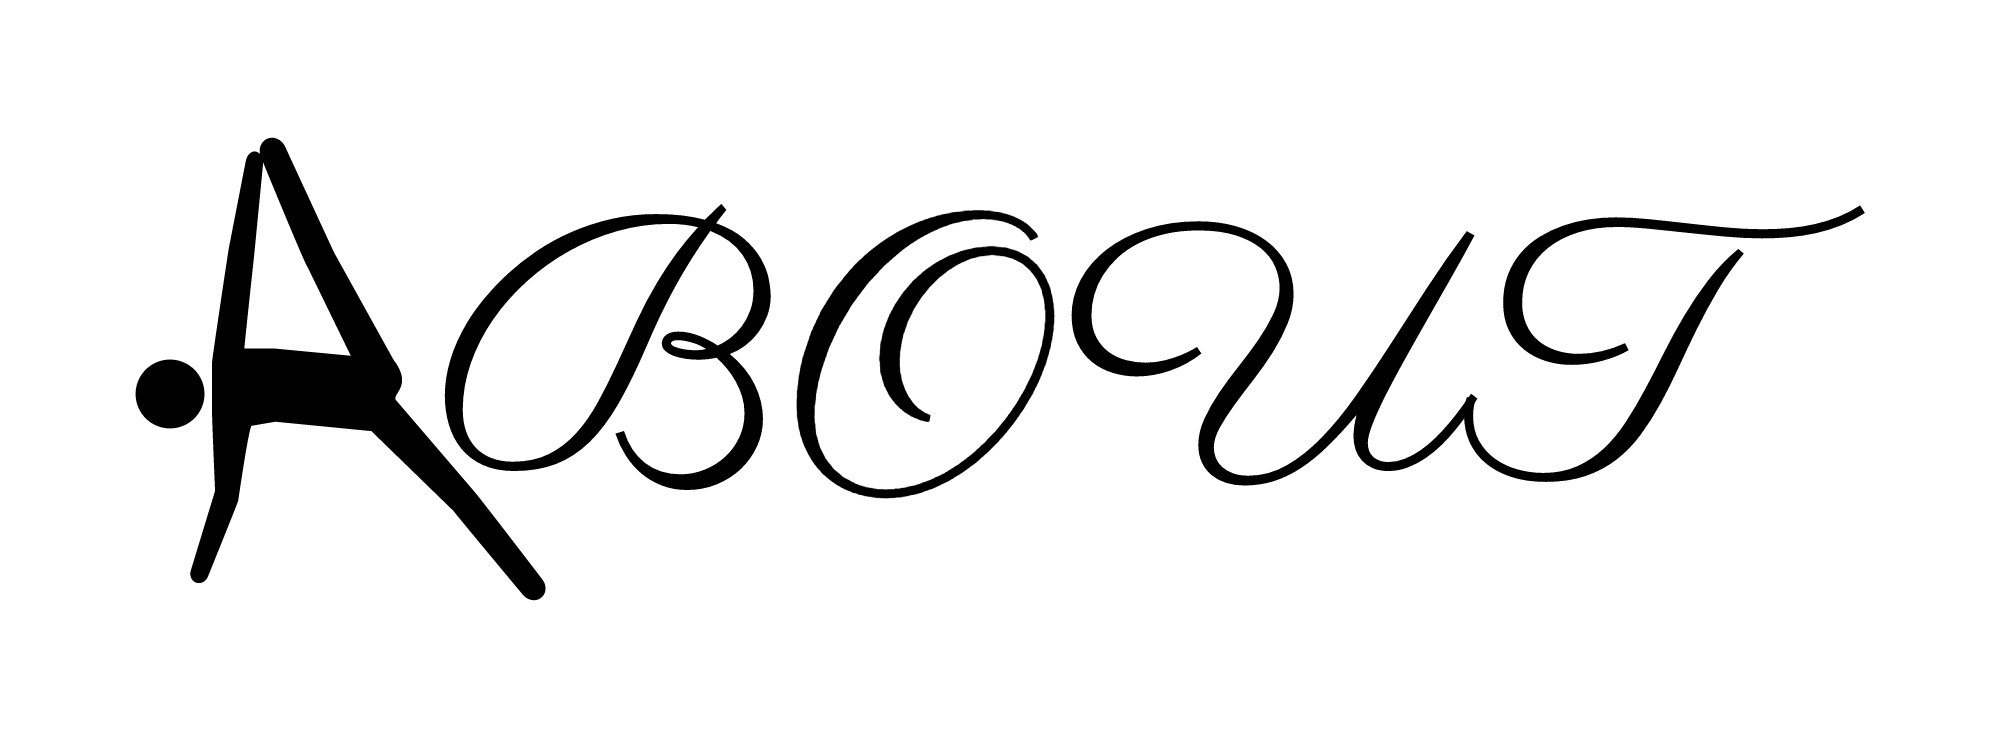 BOUT-logo (1).png